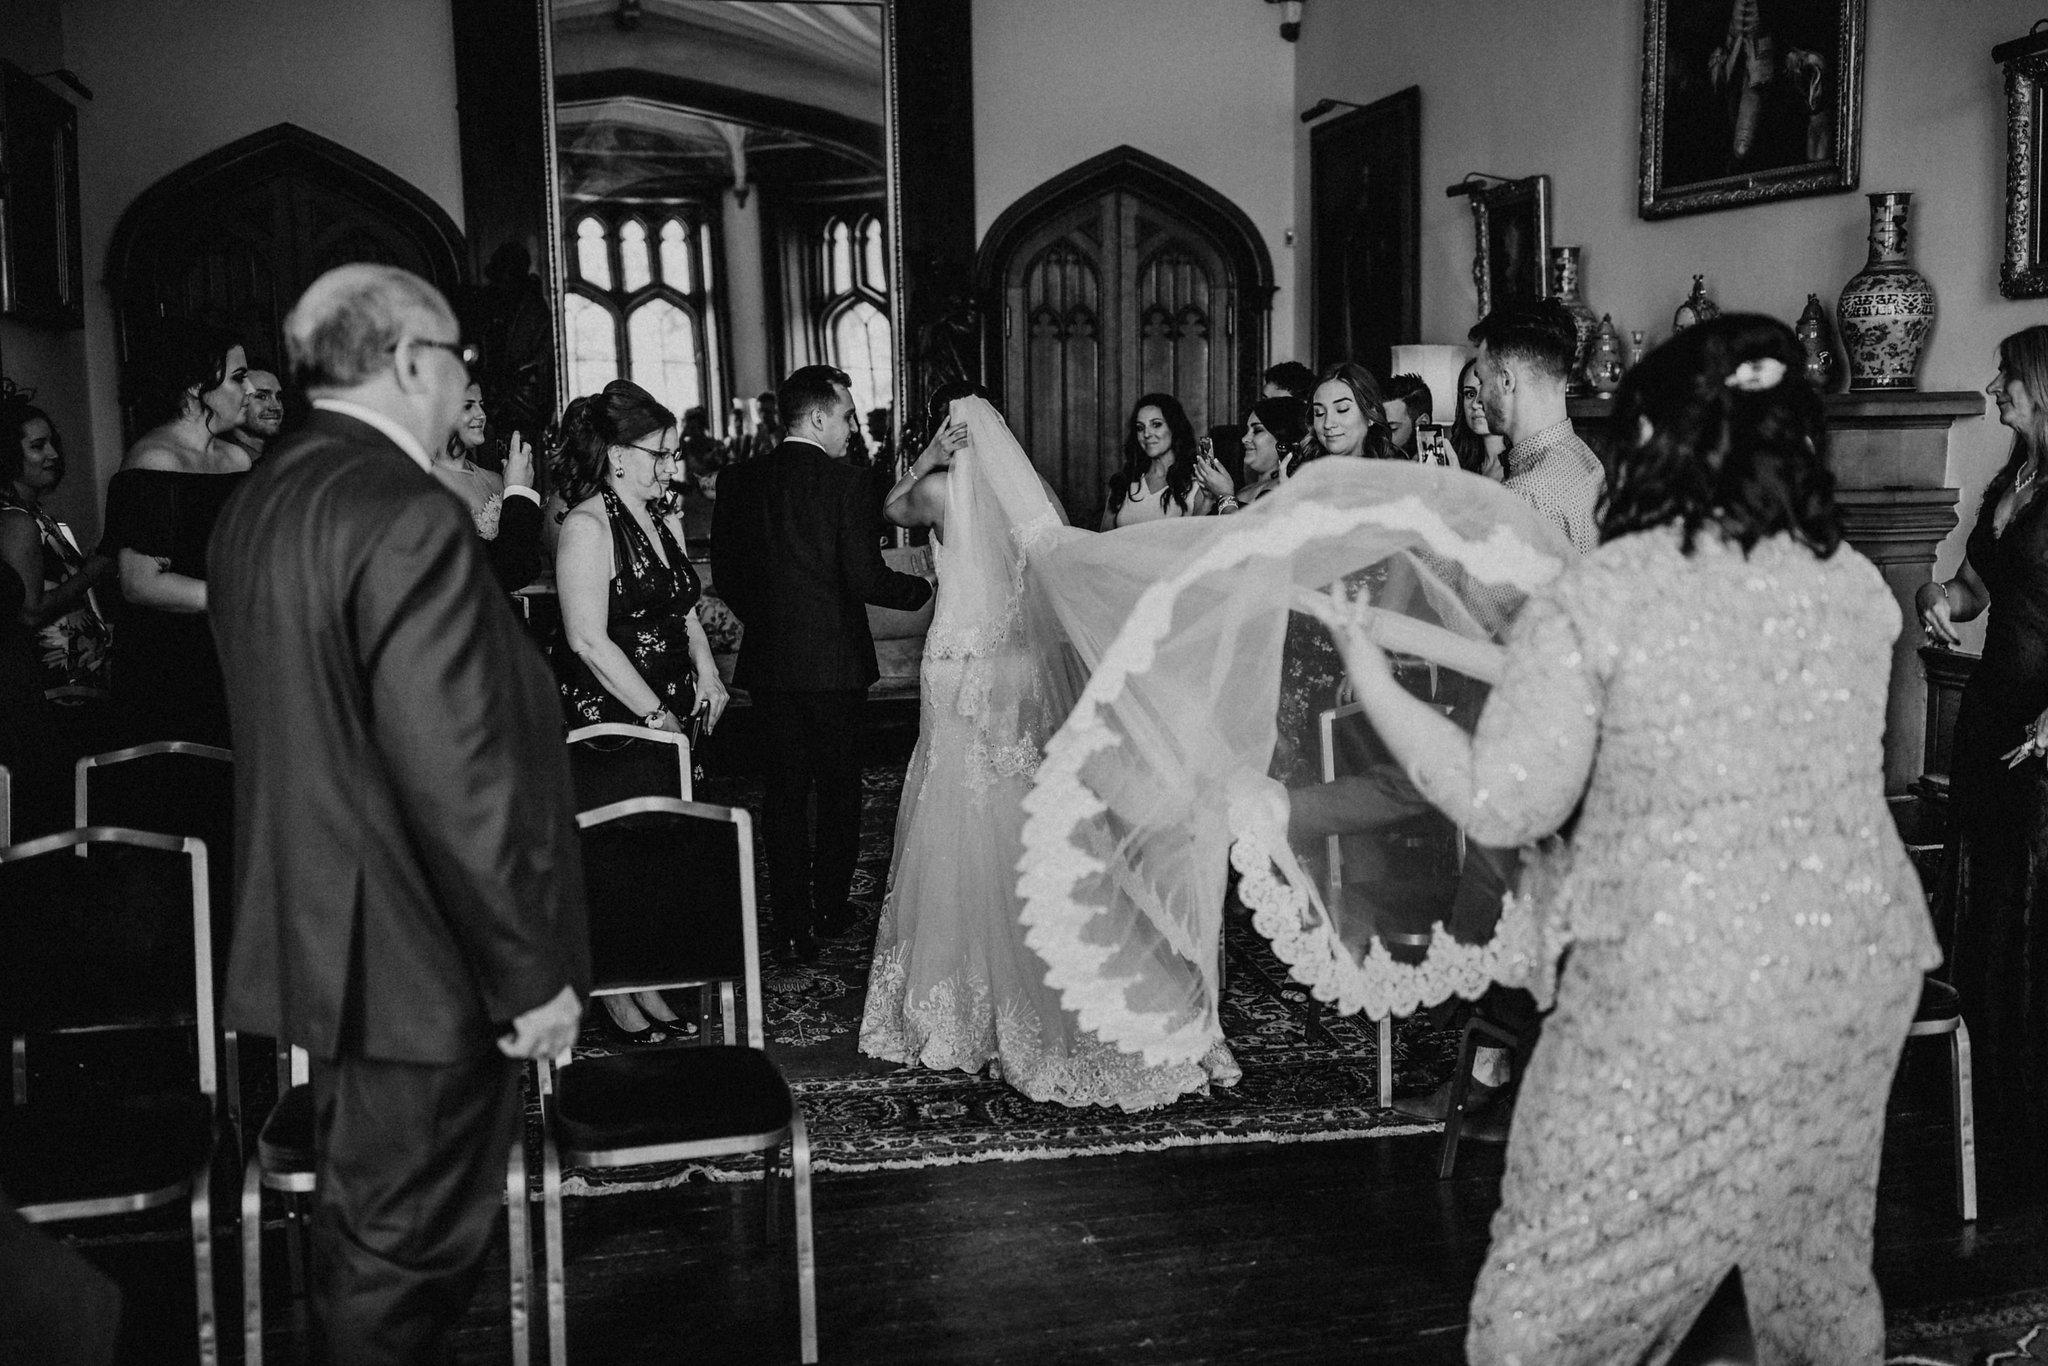 Duns_Castle_wedding_photographer_ross_alexander_photography (53).jpg